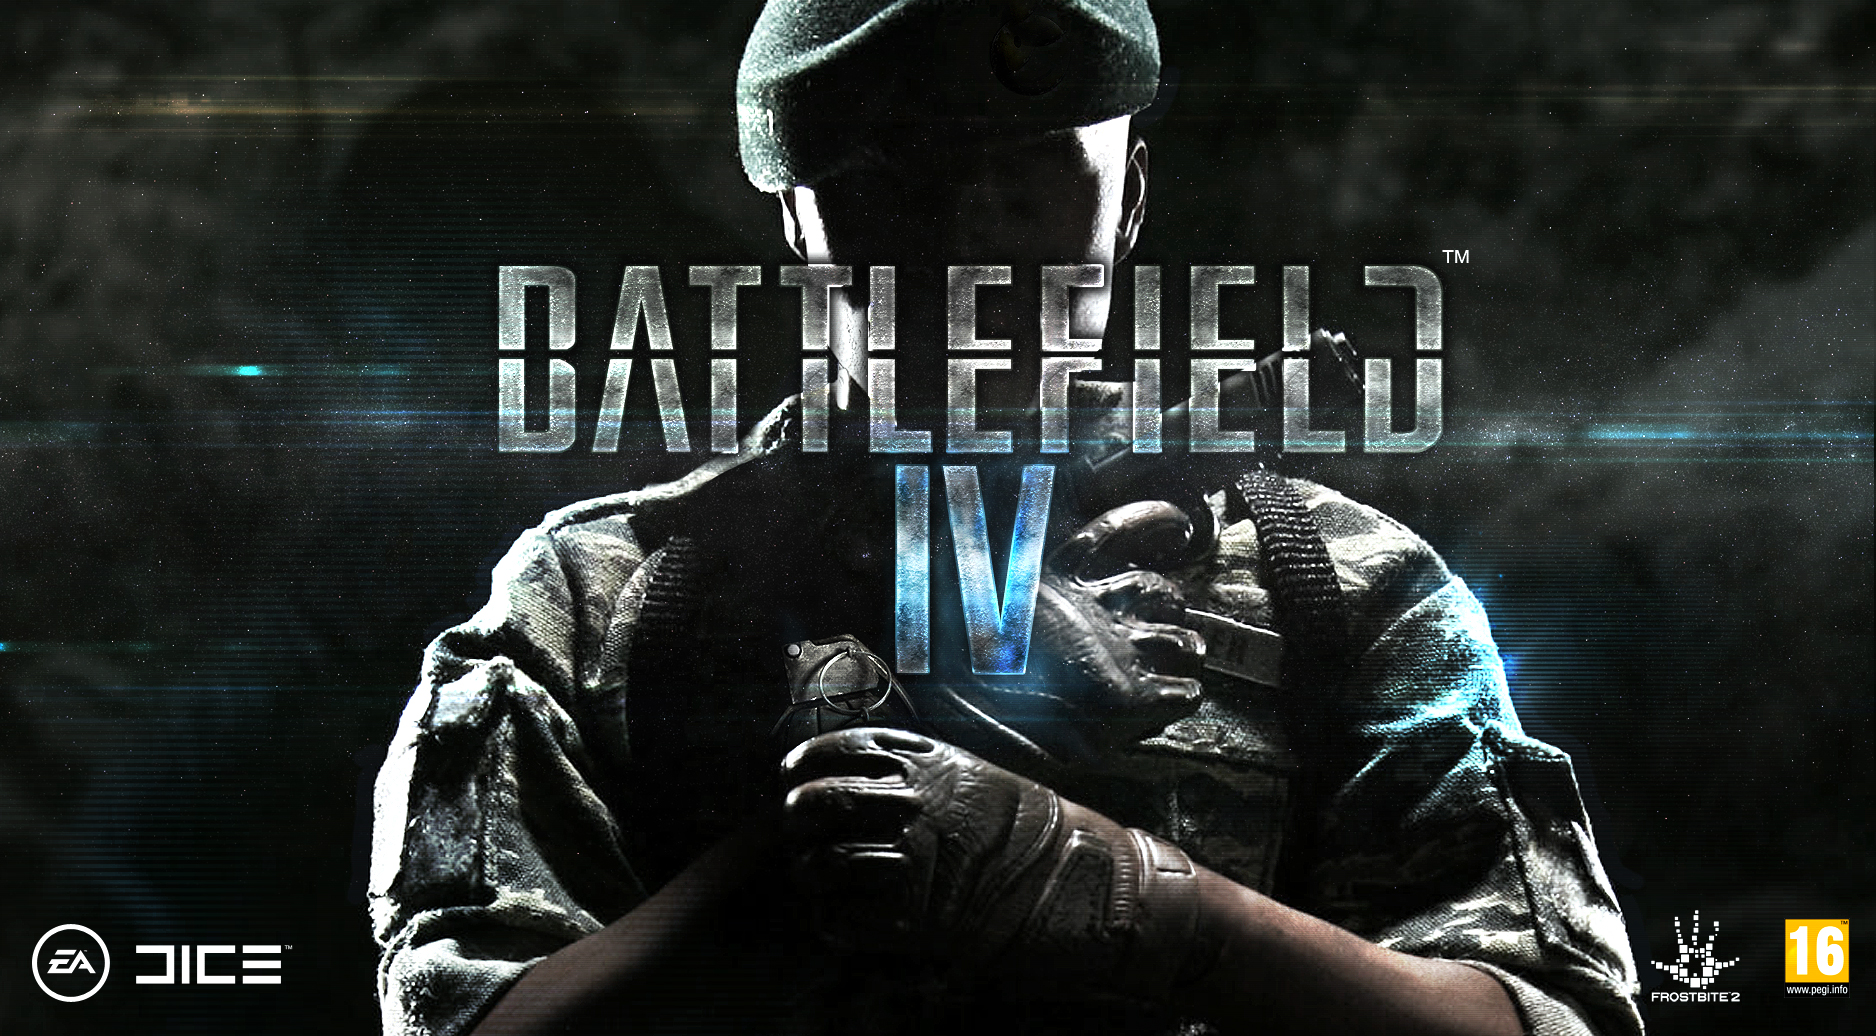 http://www.nextgen.at/wp-content/uploads/battlefield-4.jpg